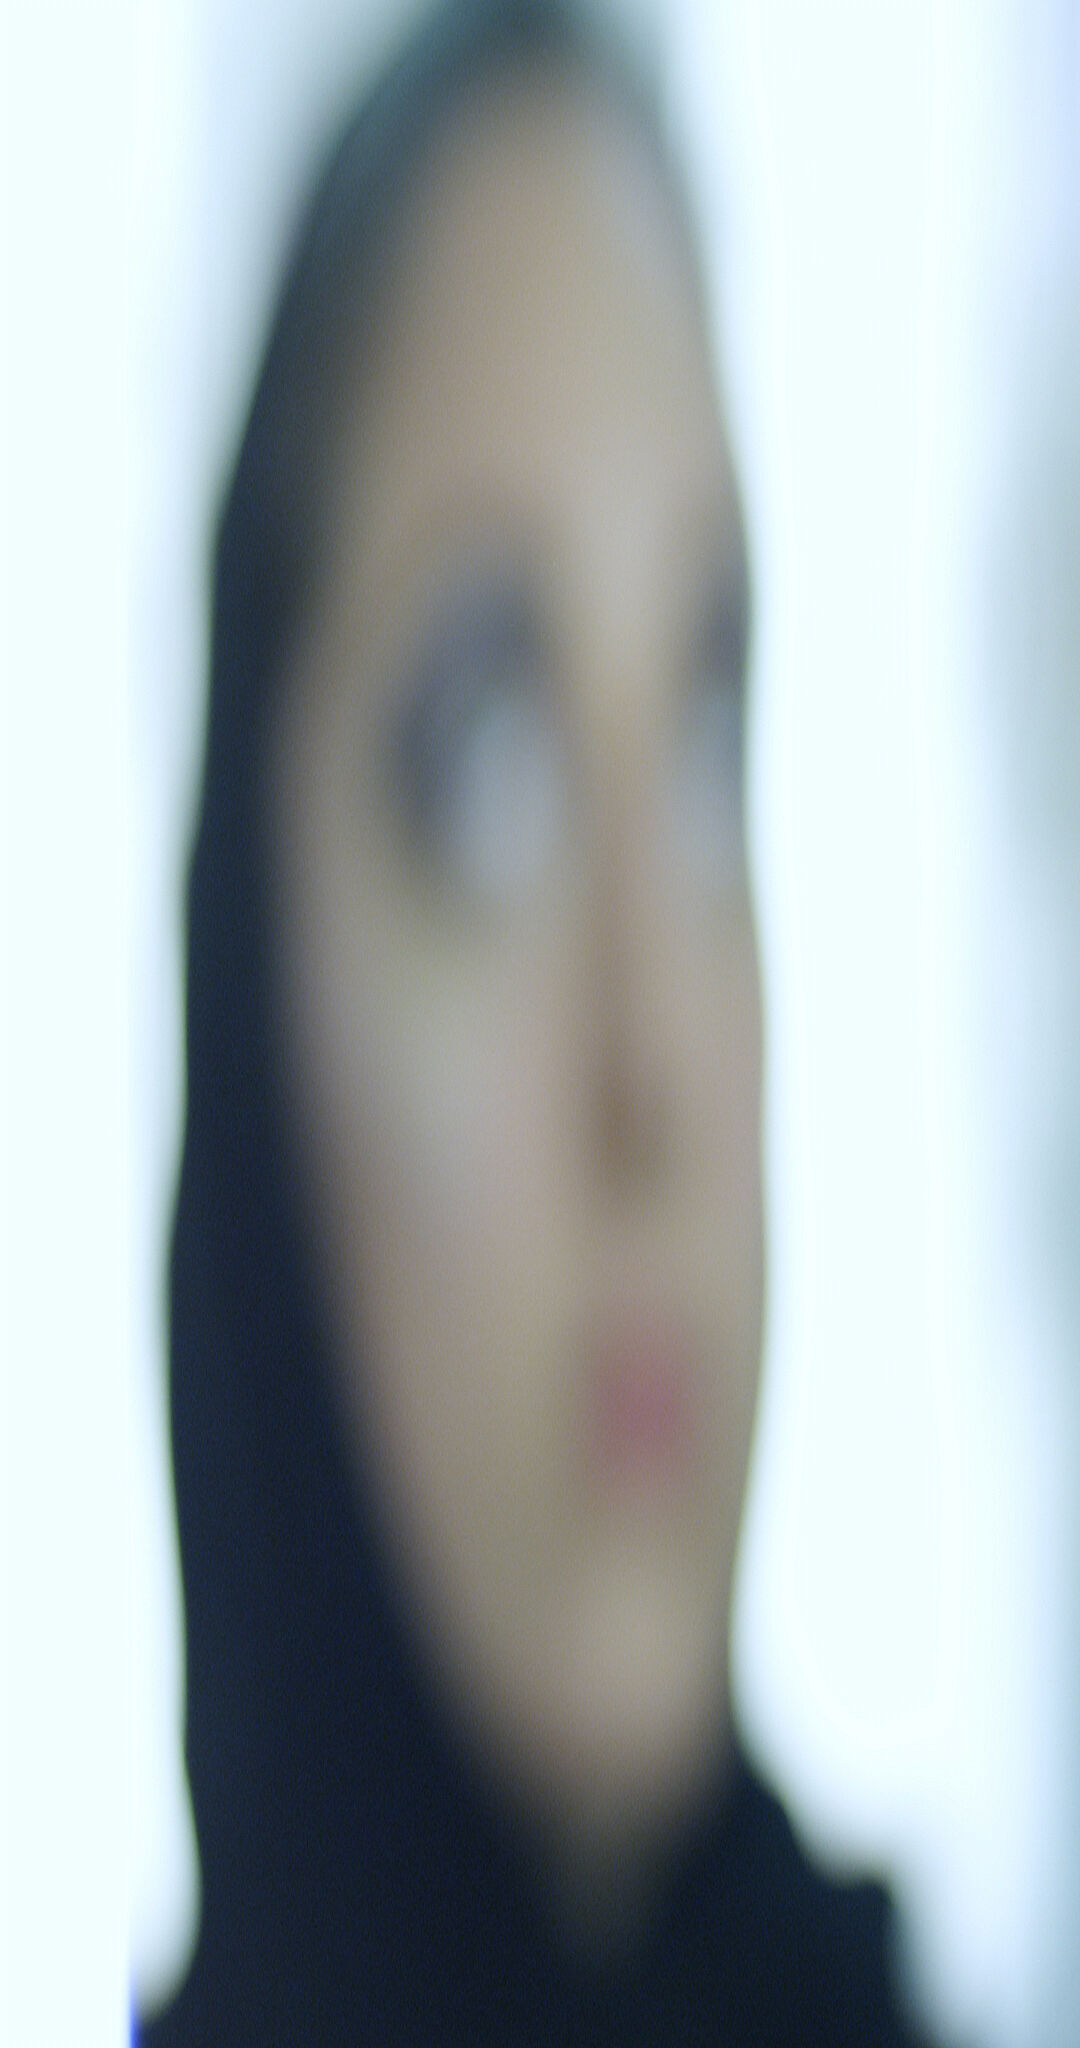 A video still by Sophia Al Maria of a blurred woman's face.